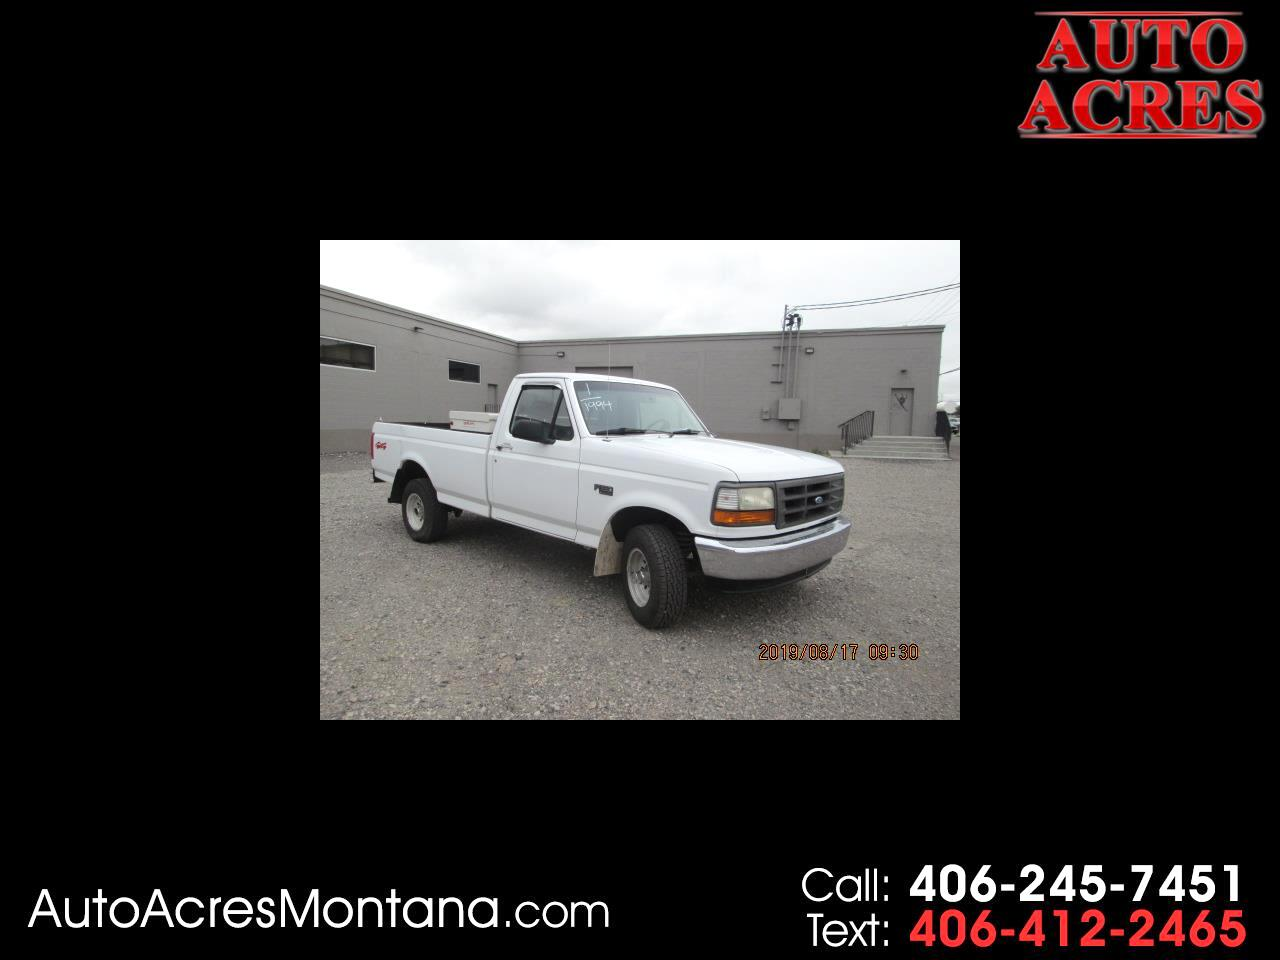 1994 Ford F-150 133